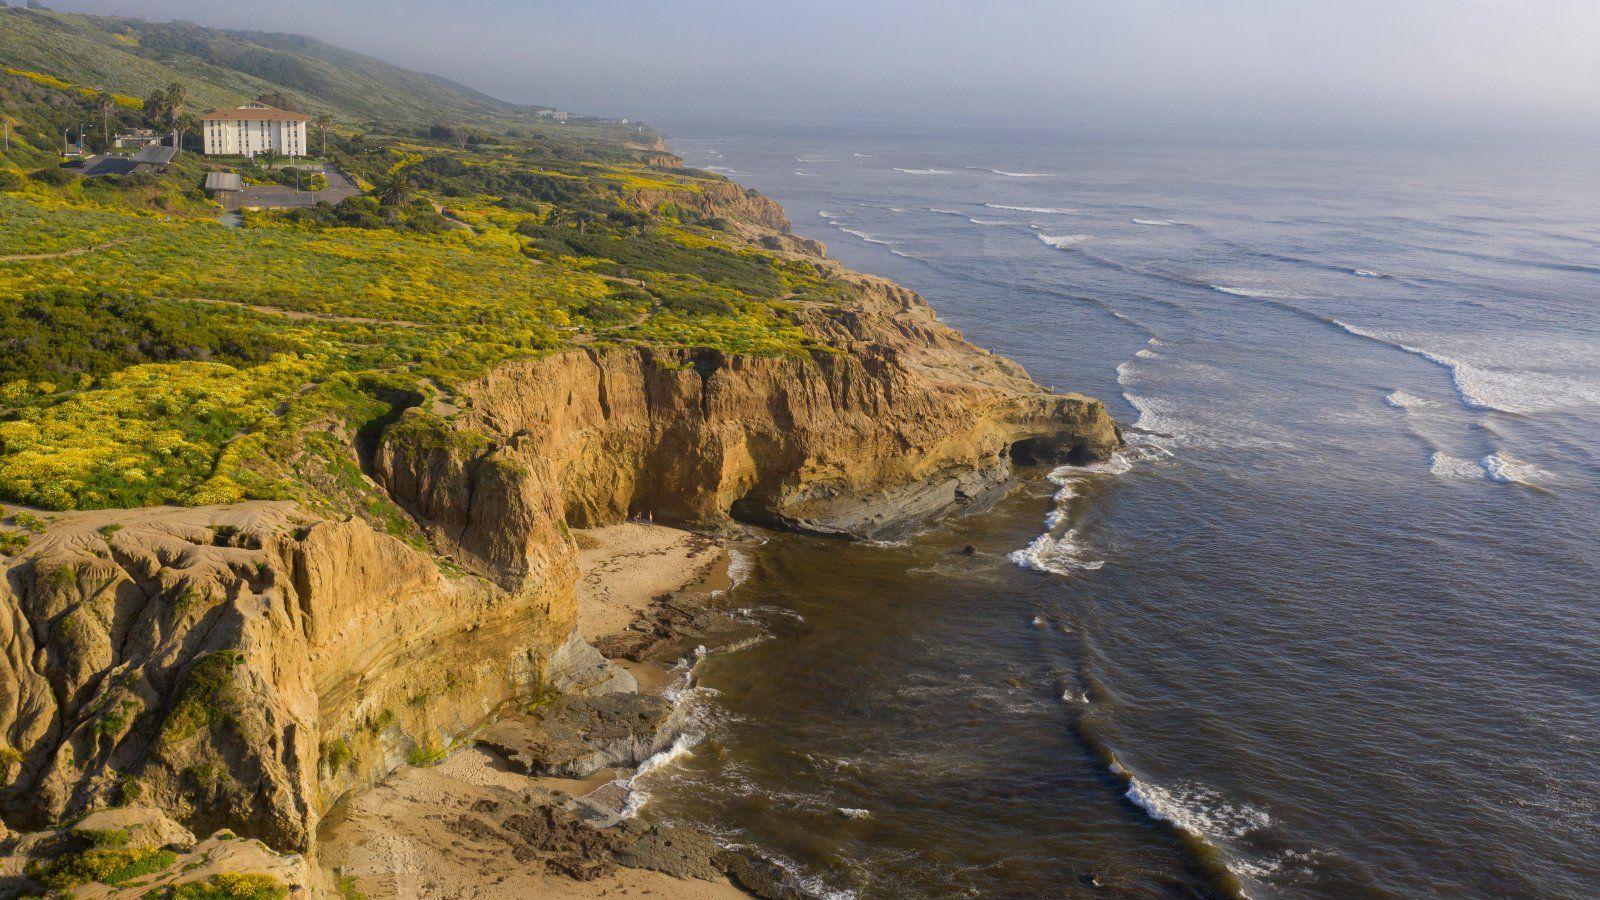 Aerial view overlooking Young Hall with the rugged coastline off the campus of PLNU